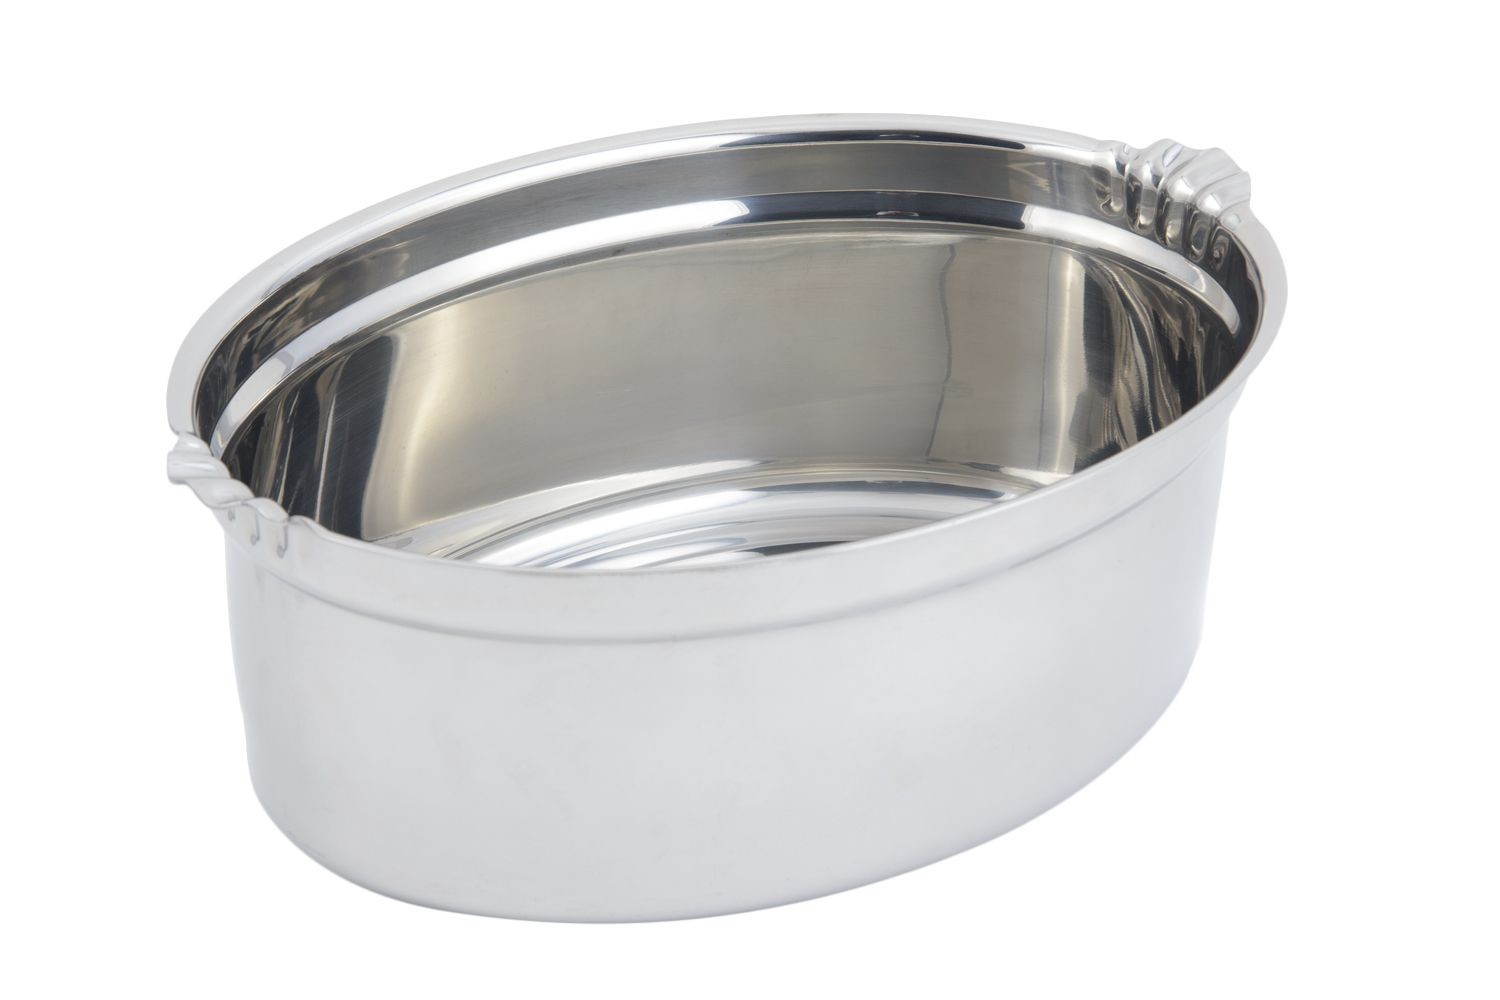 Bon Chef 2284 Casserole Dish with Shell Handles, 7.1 Qt.